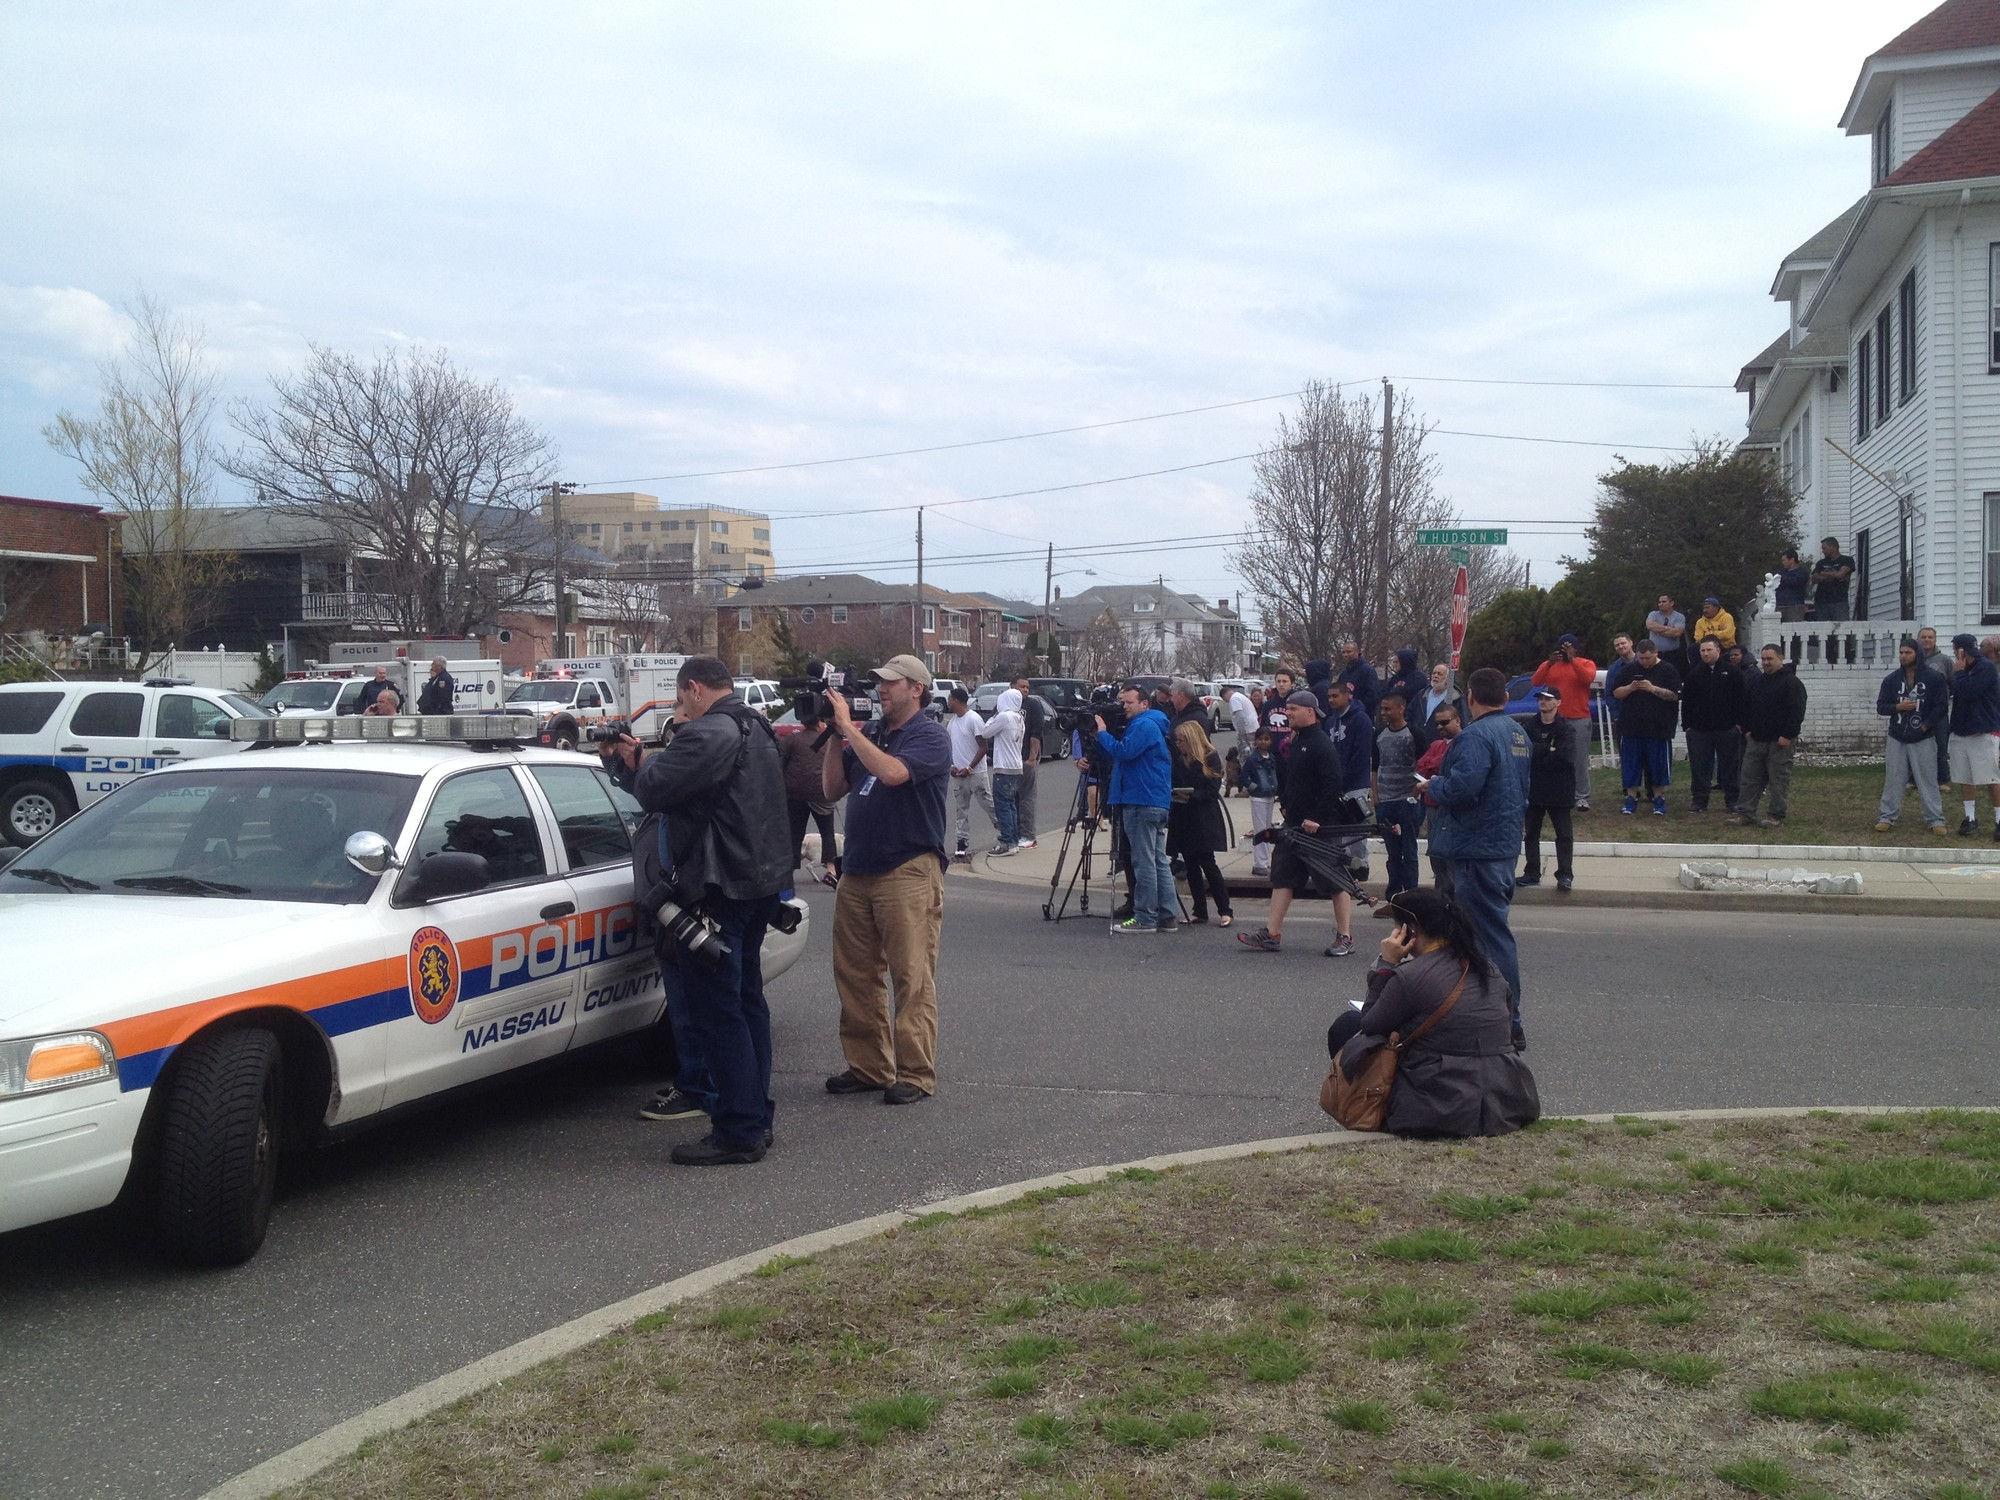 Laurelton Boulevard was teeming with news media on Tuesday, as residents and bystanders milled about near the scene.